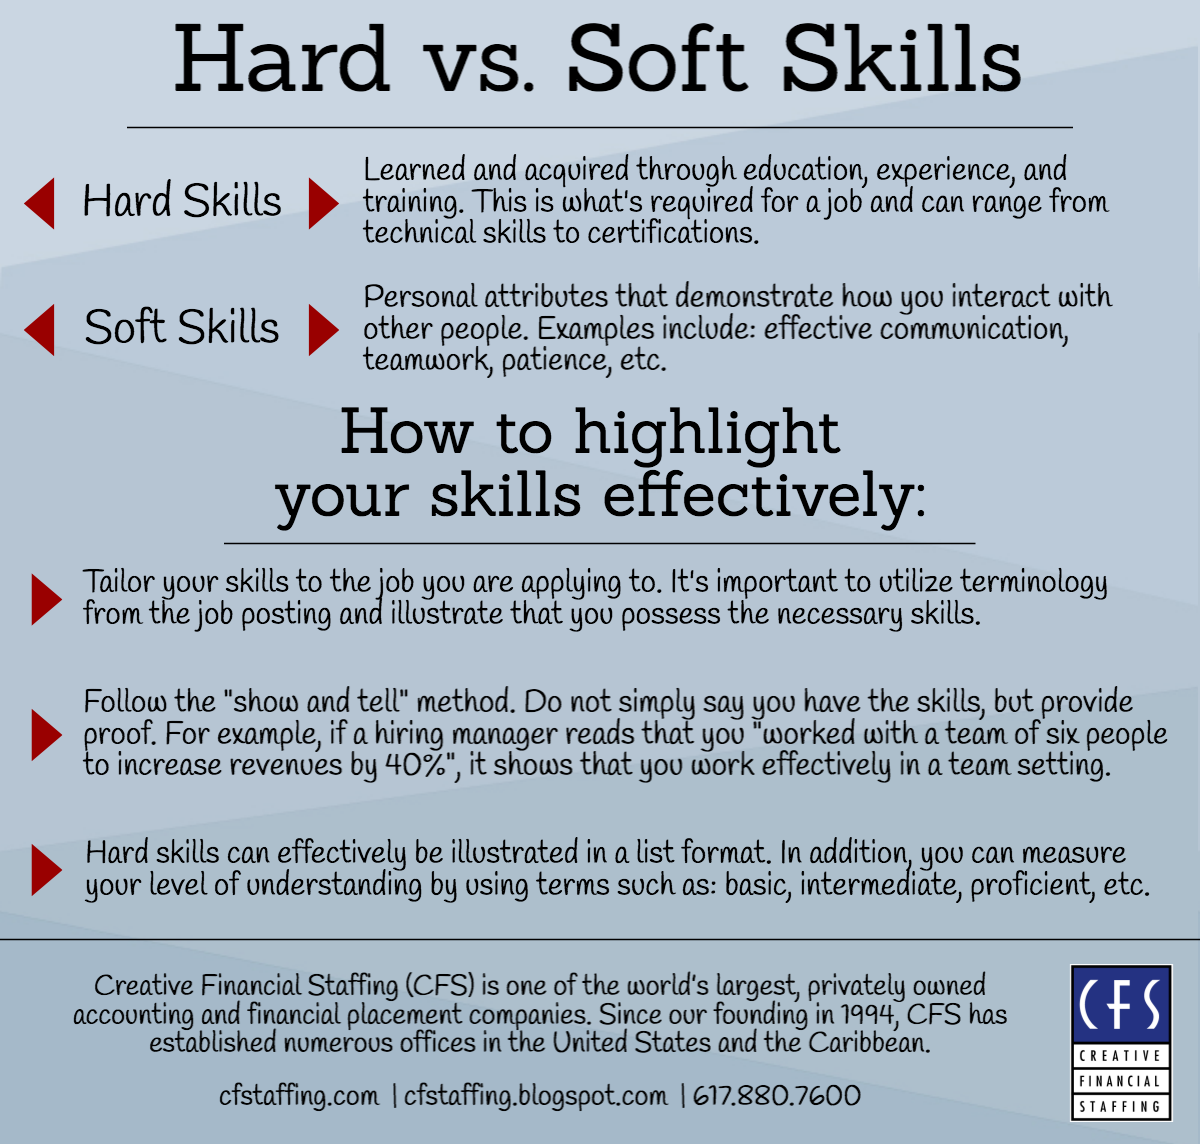 Accounting And Finance Skills Resume Creative Financial Staffing The Difference Between Hard And Soft